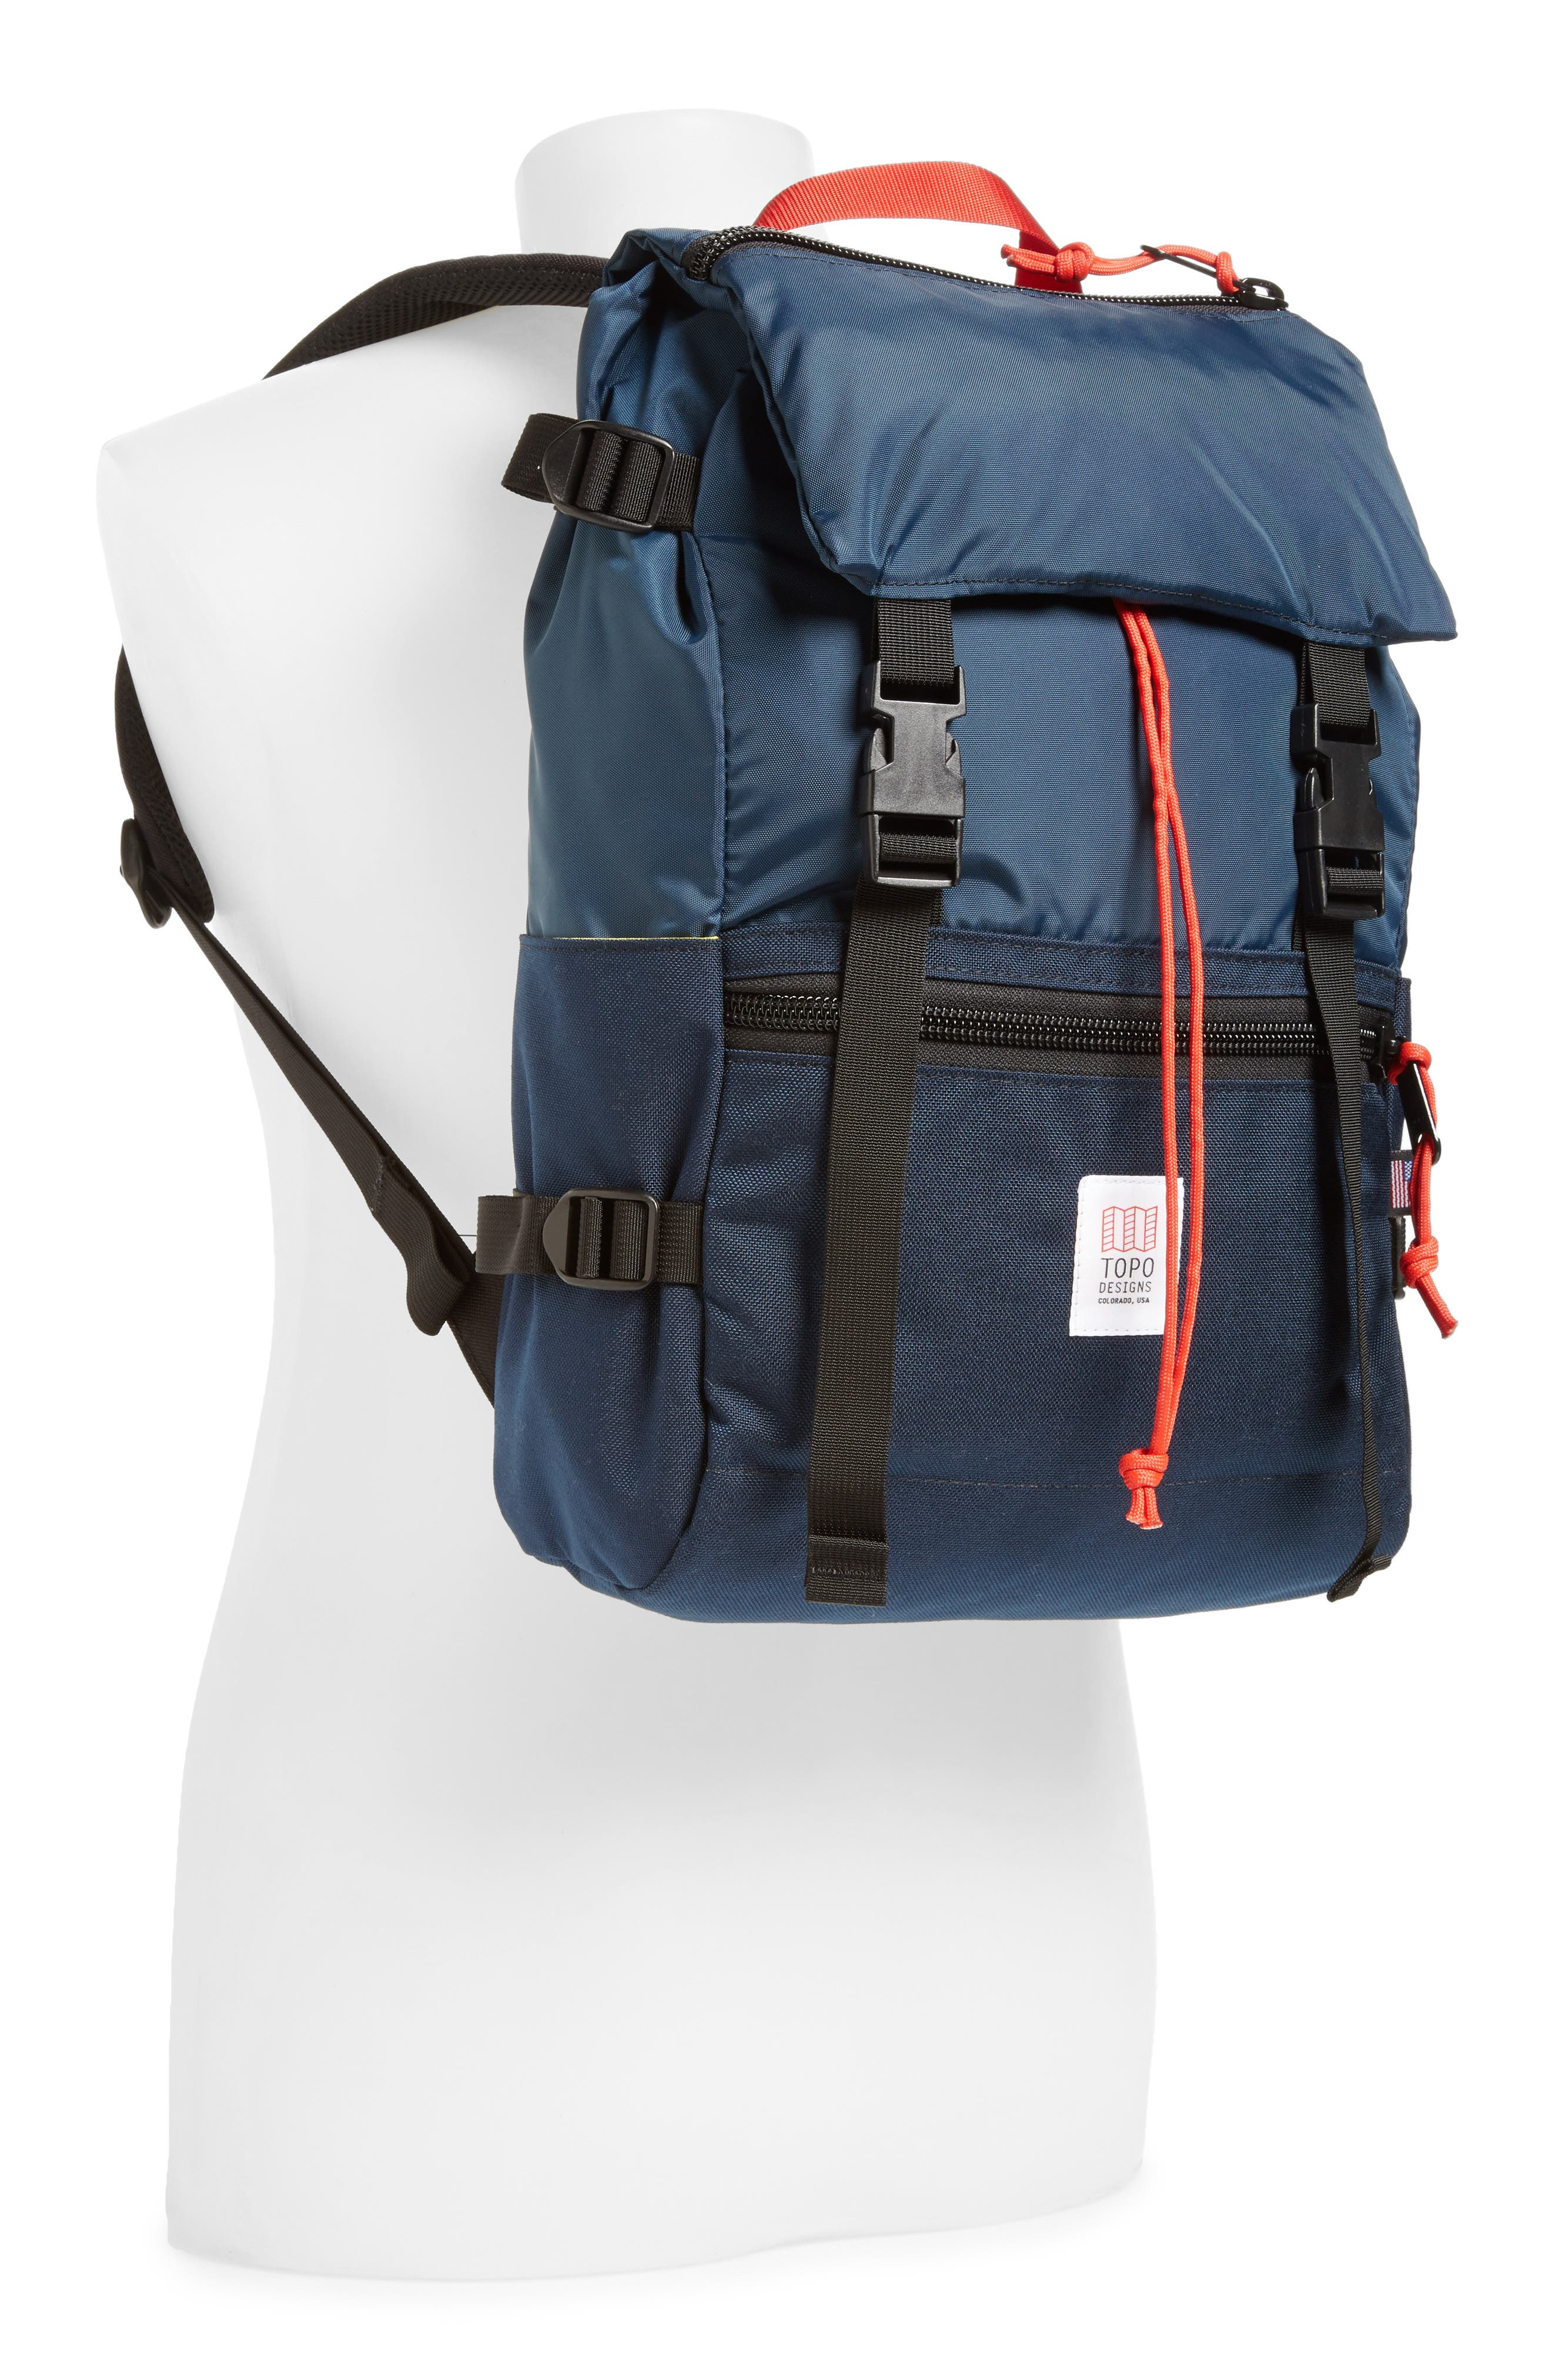 Rover Backpack,                             Alternate thumbnail 2, color,                             NAVY